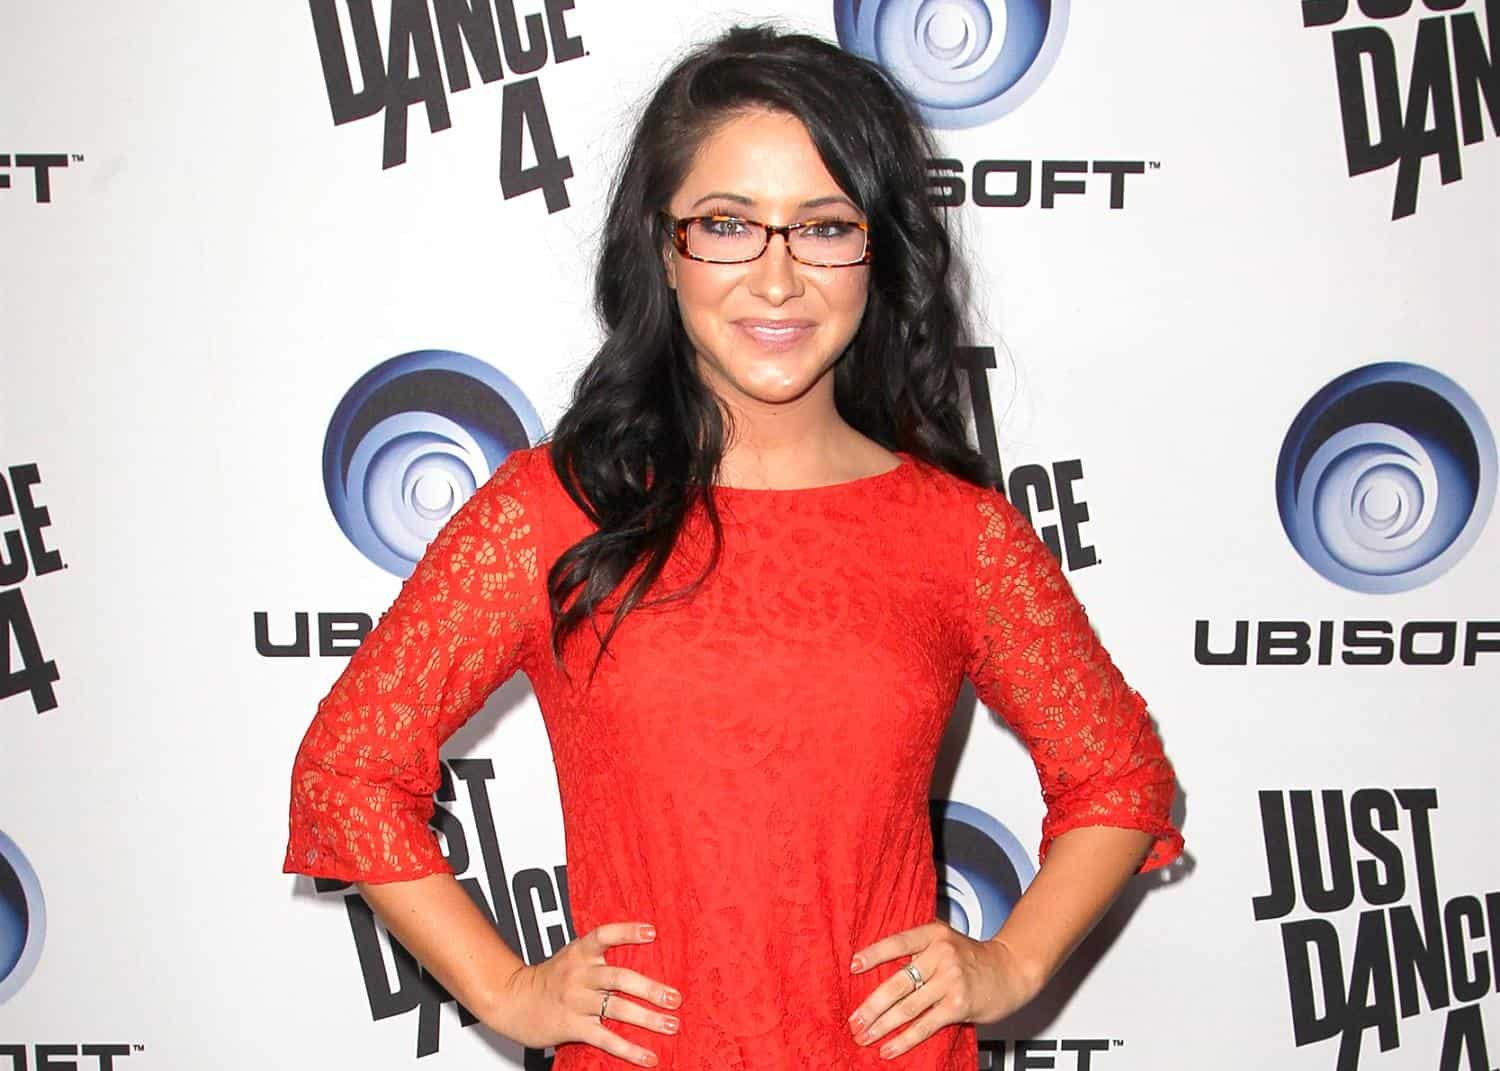 Bristol Palin Joins Teen Mom OG